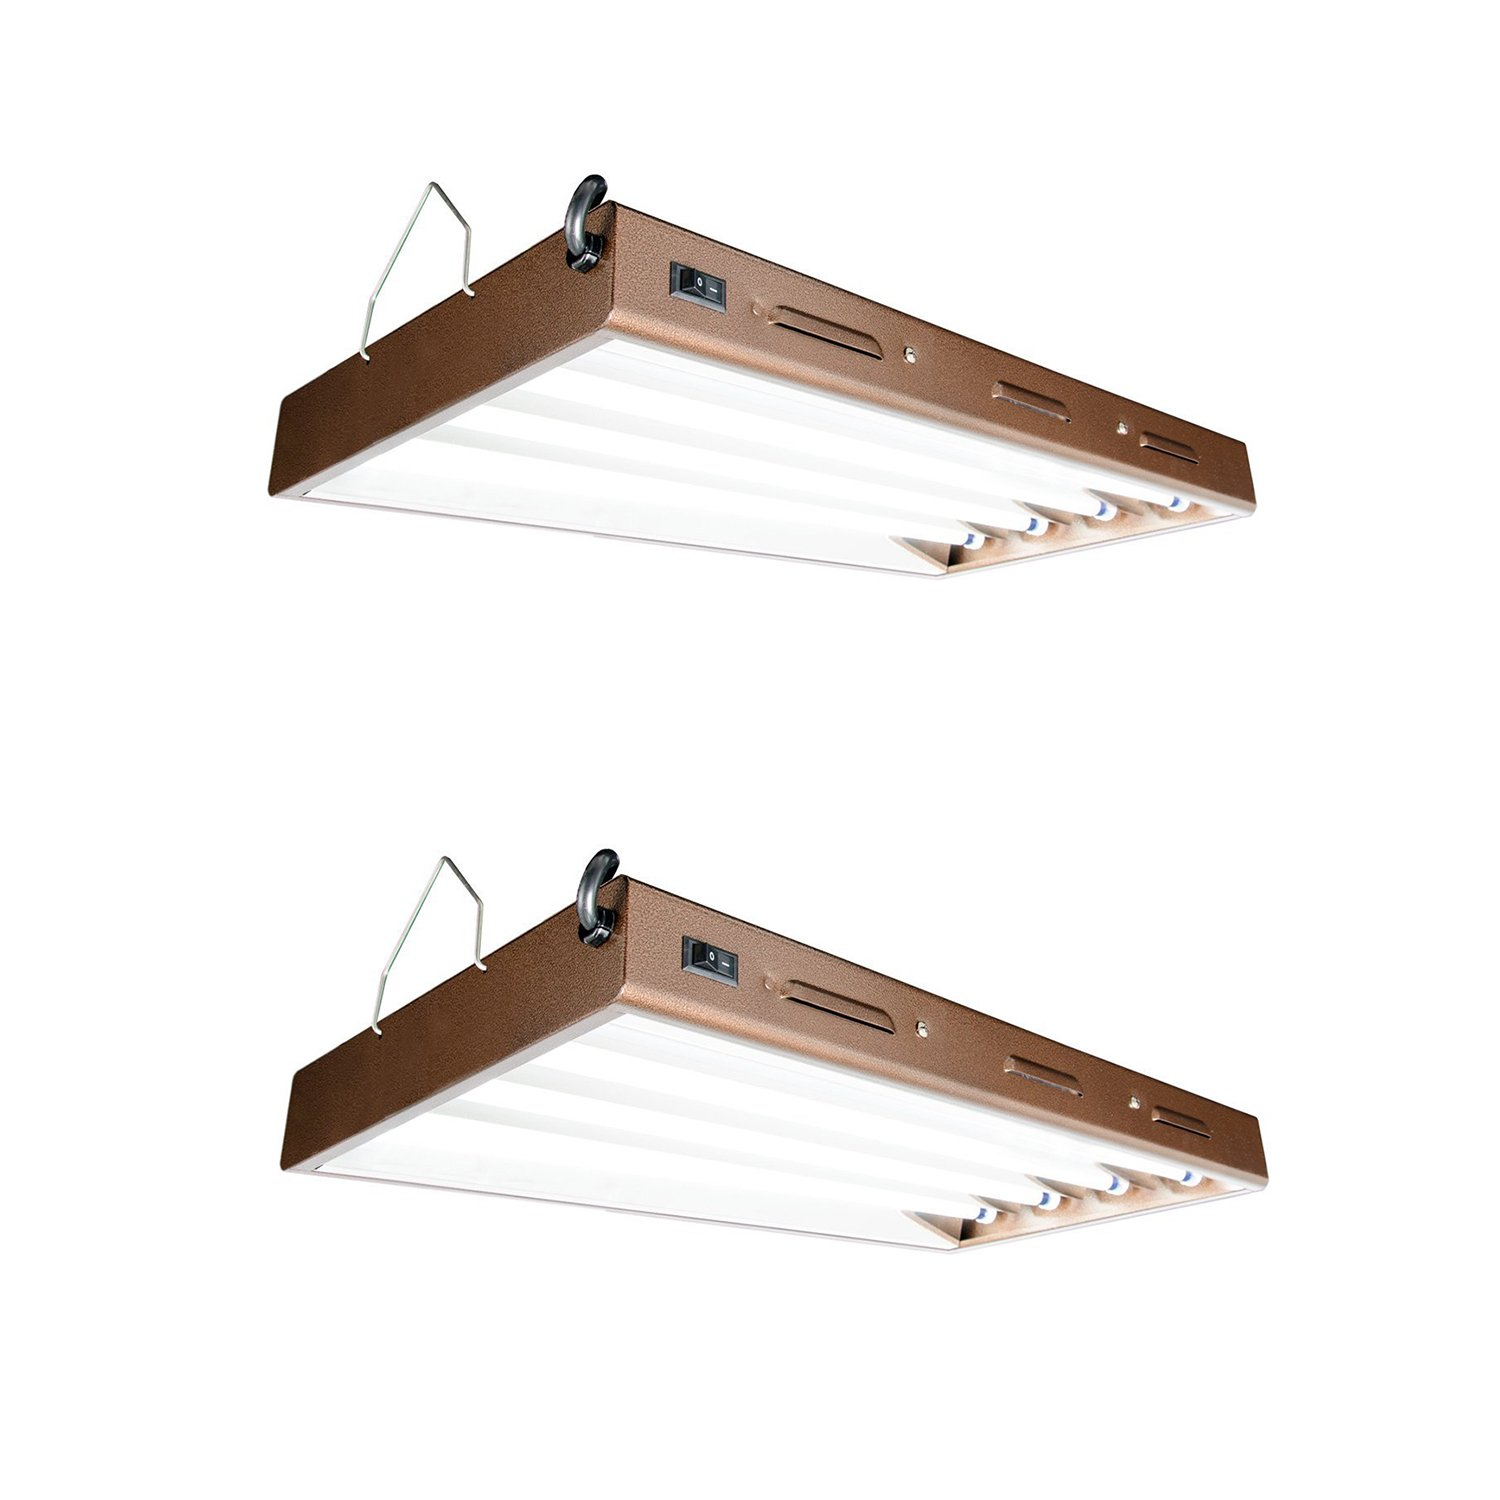 Agrobrite Designer T5 96W 2' 4-Tube Daisy Chainable Grow Light Fixture (2 Pack)